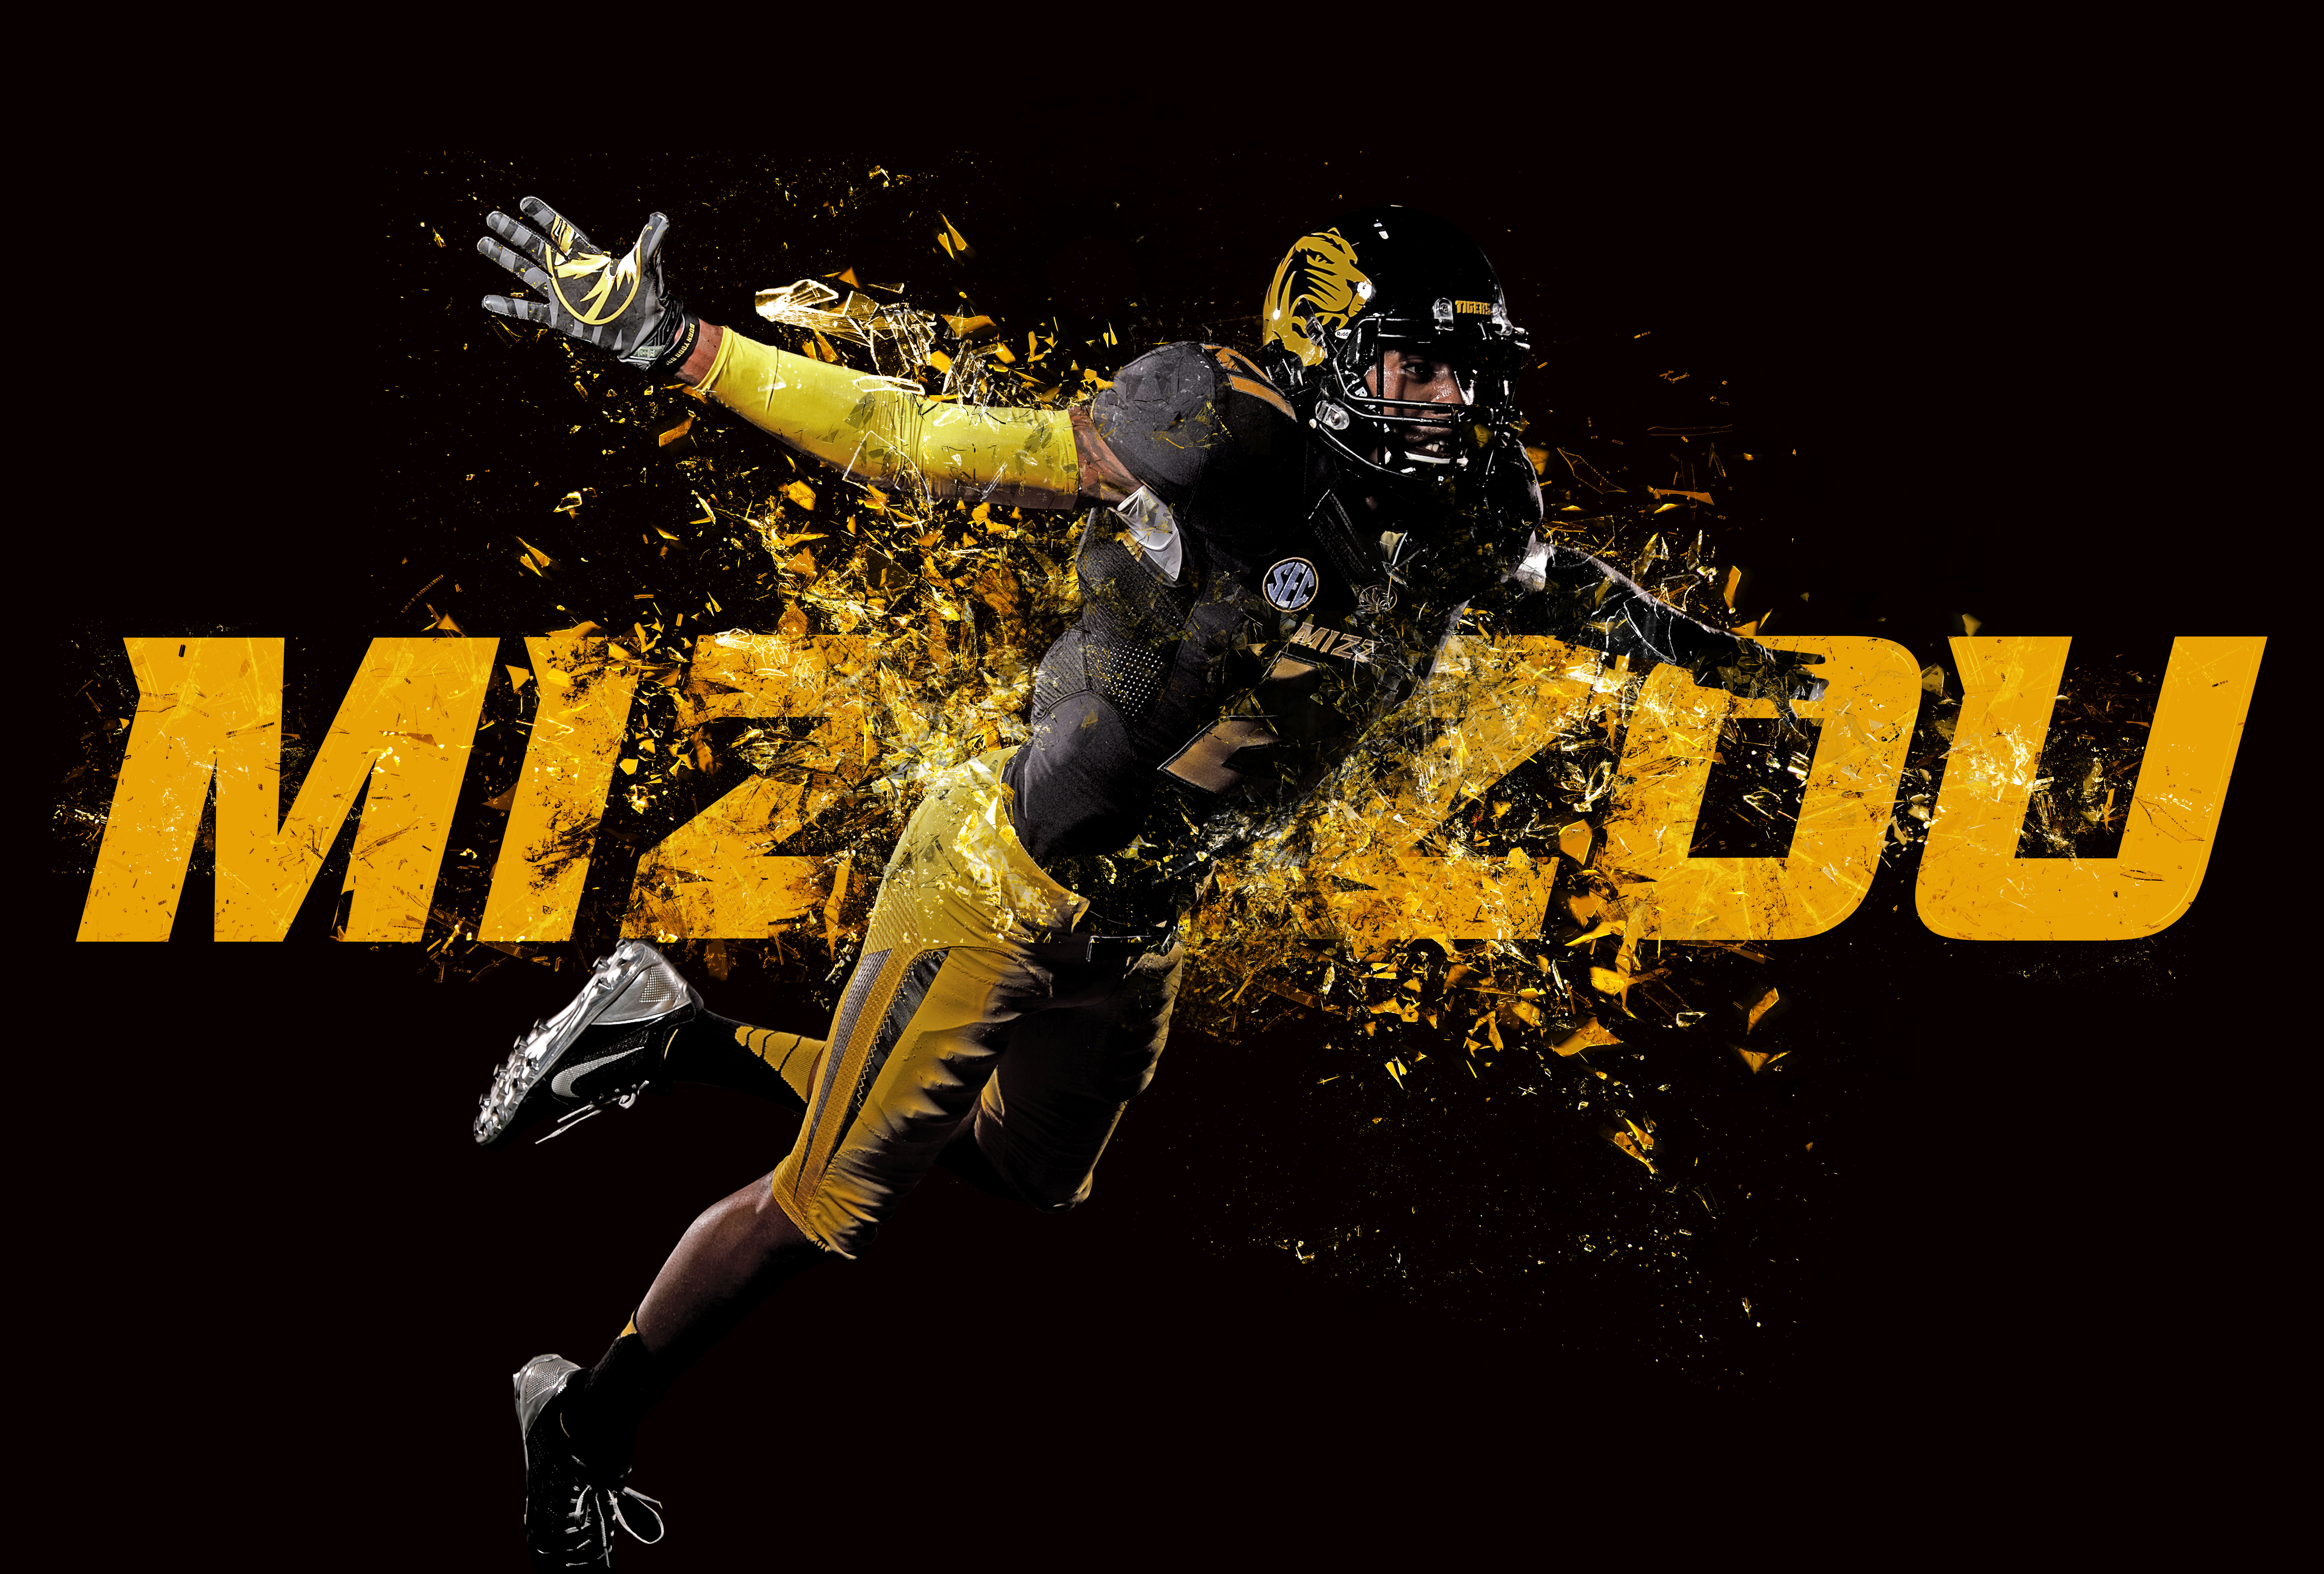 Mizzou Wallpaper